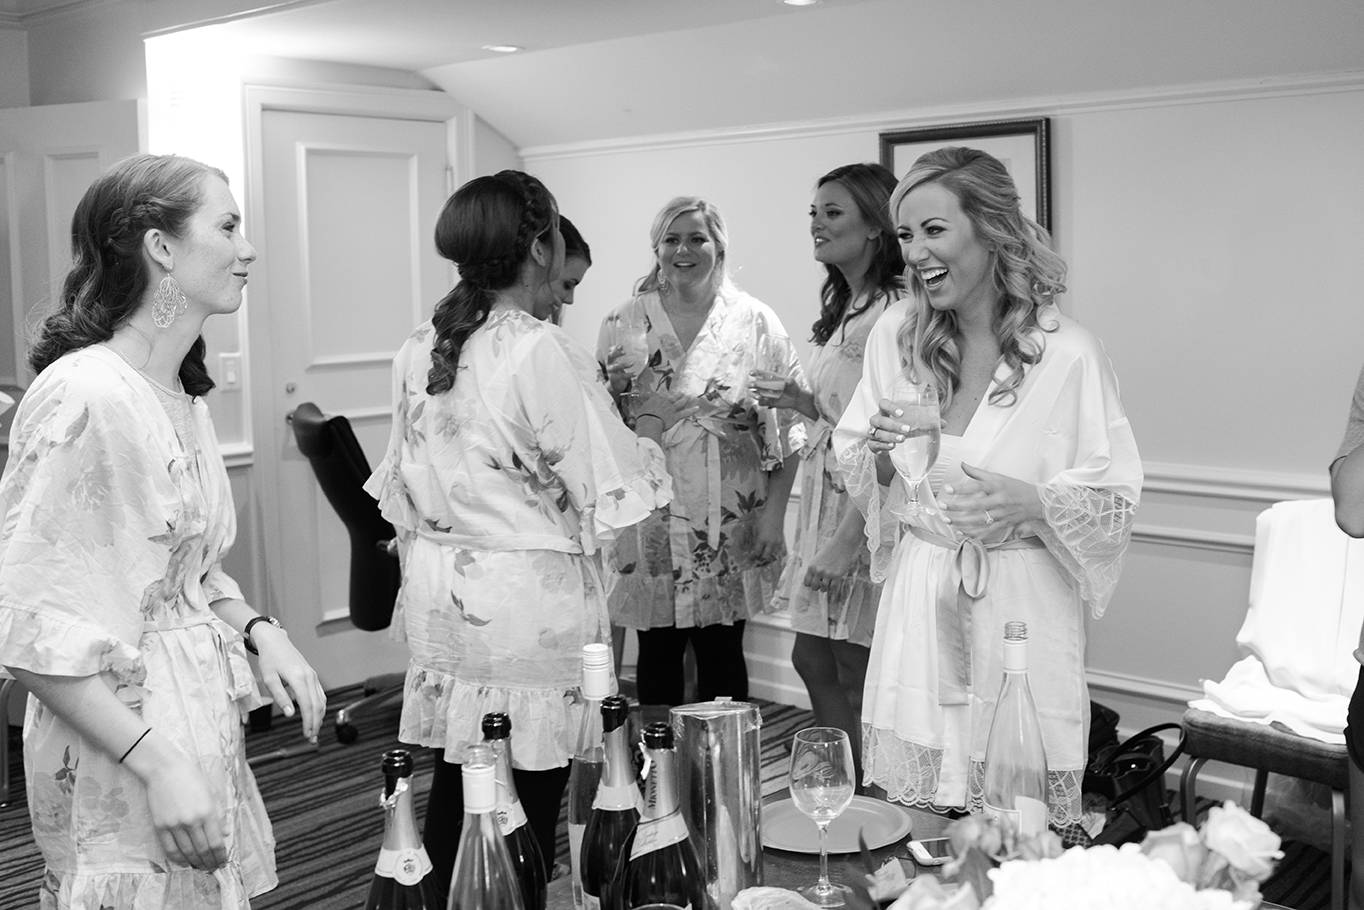 hotel wedding, getting ready, bridesmaids, bride